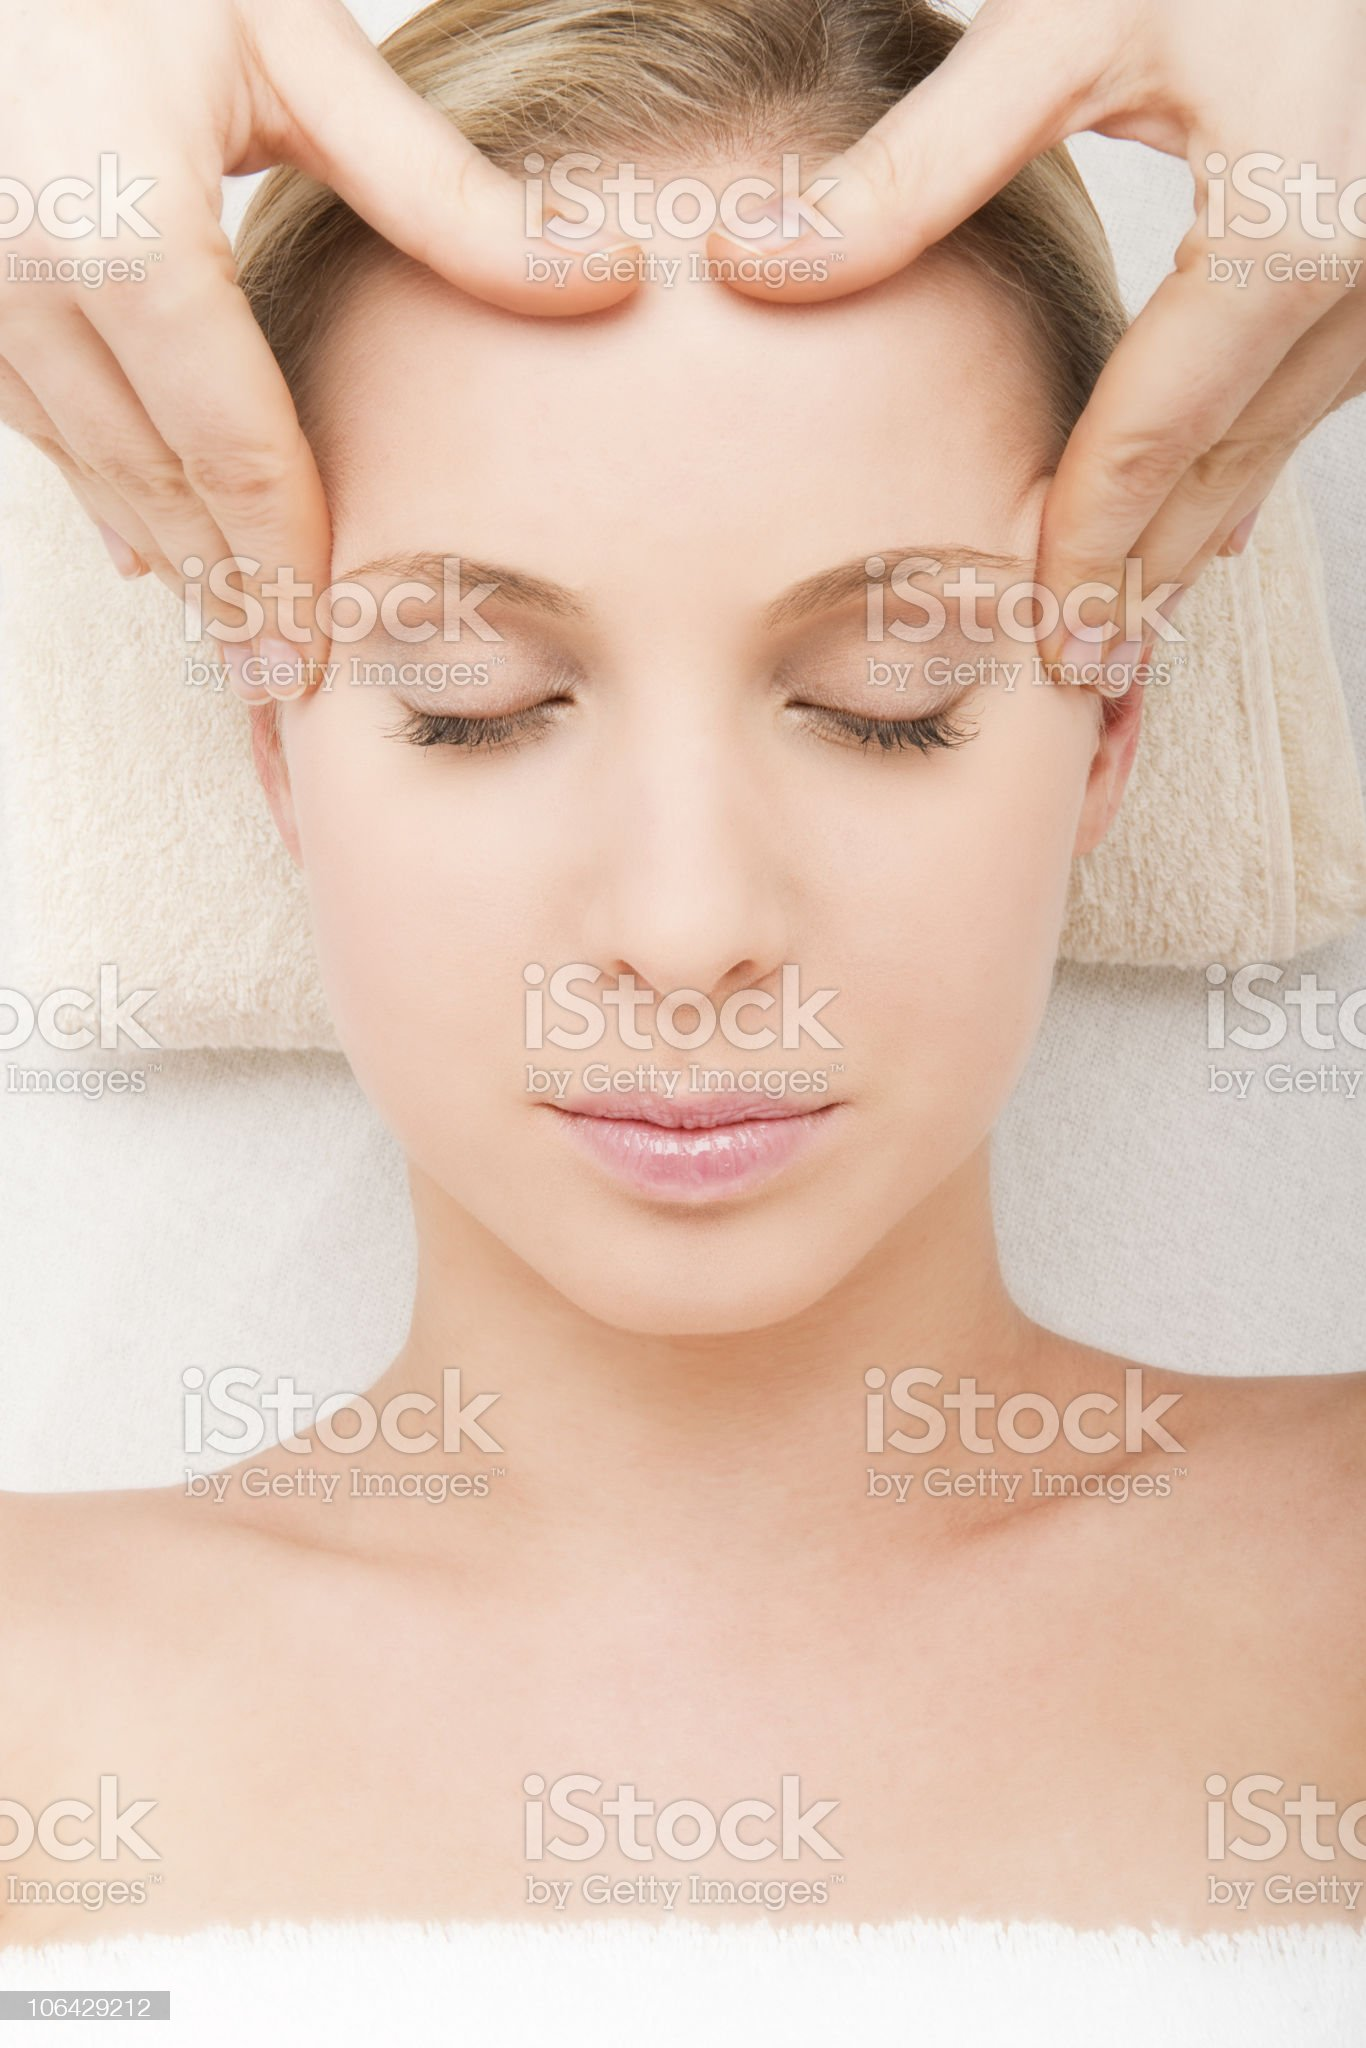 Woman comfortably receiving head massage royalty-free stock photo